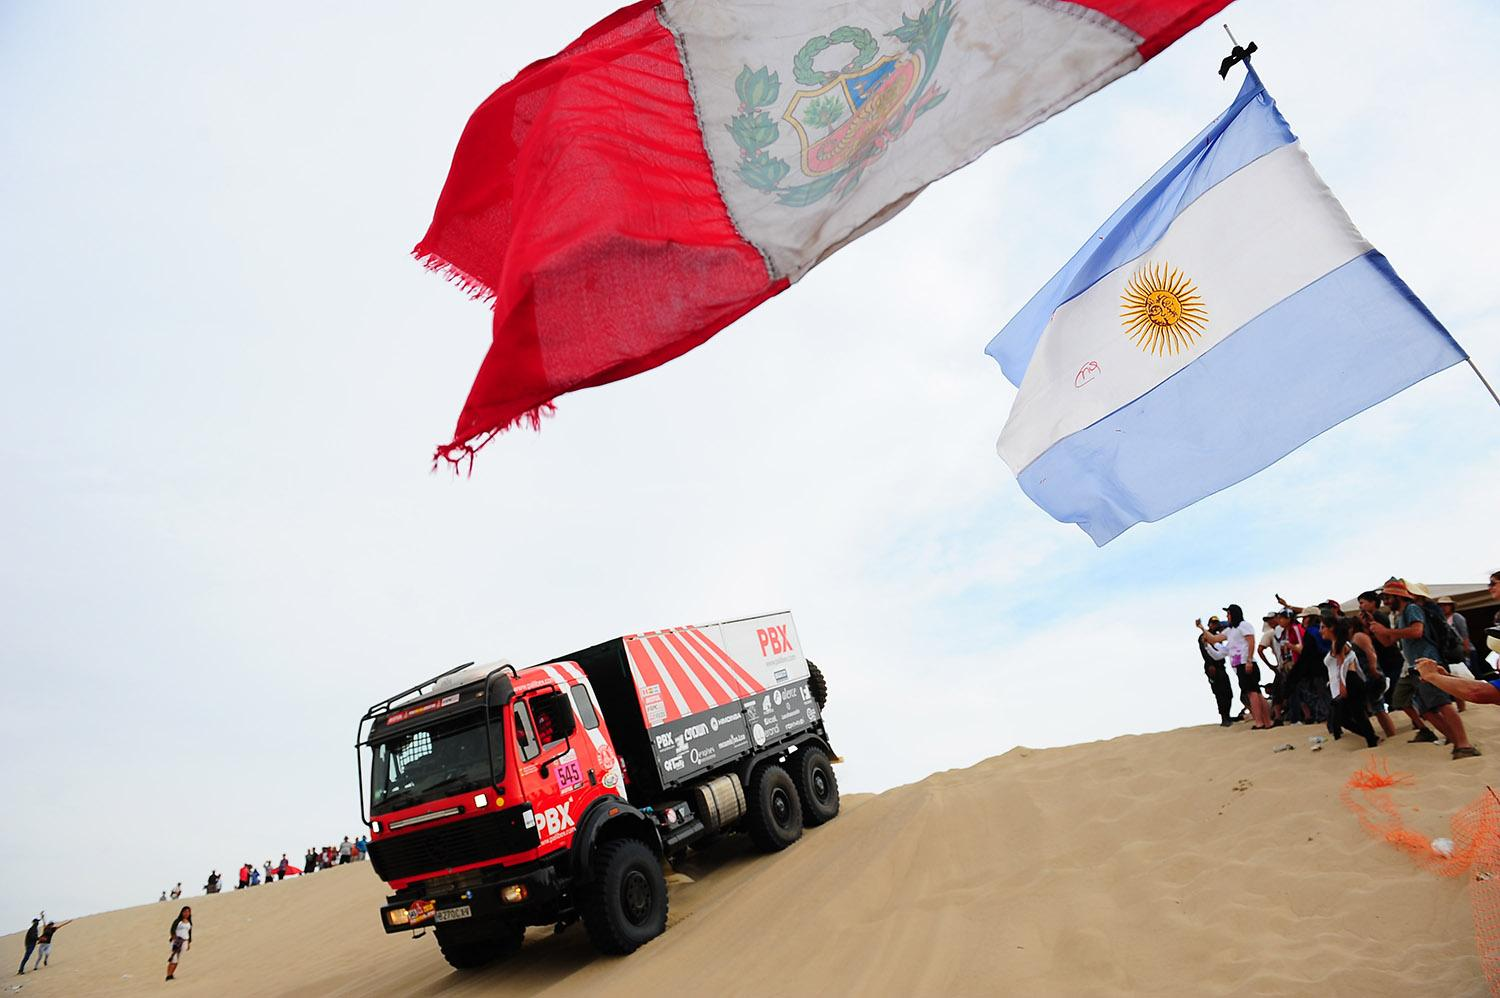 545-2018-01-06-PBX DAKAR 2018 TEAM (3)